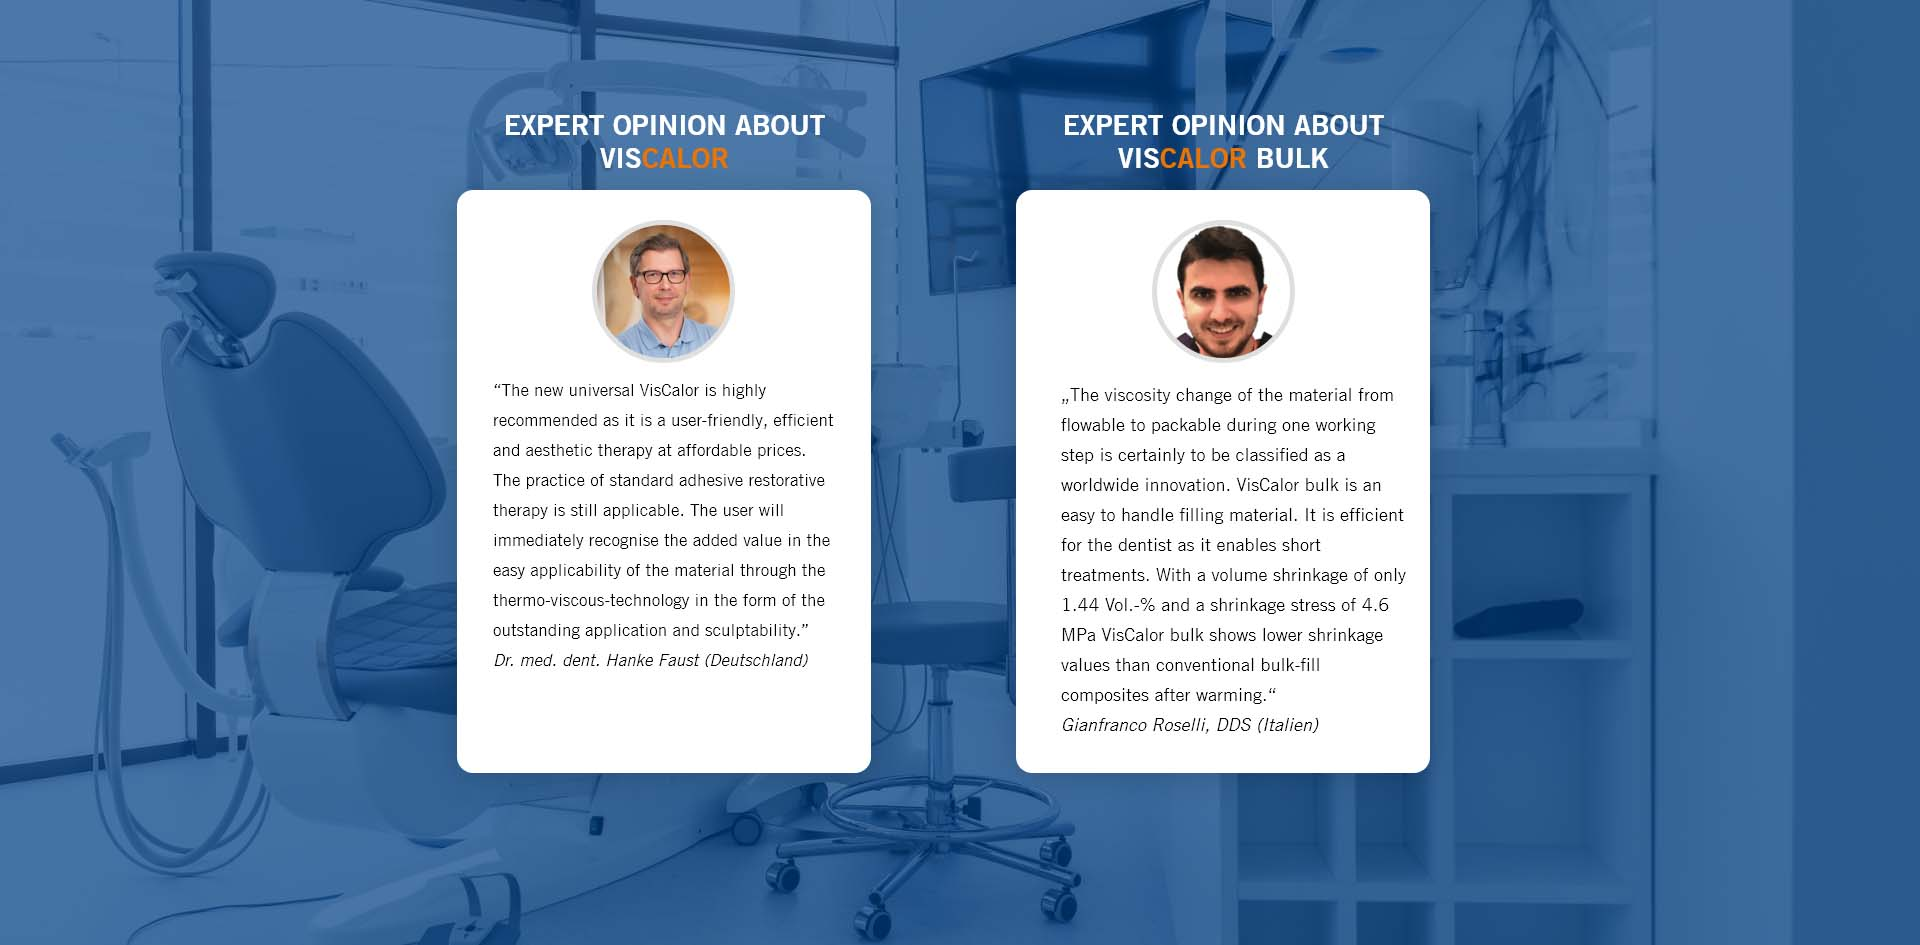 Experts Opinion Picture